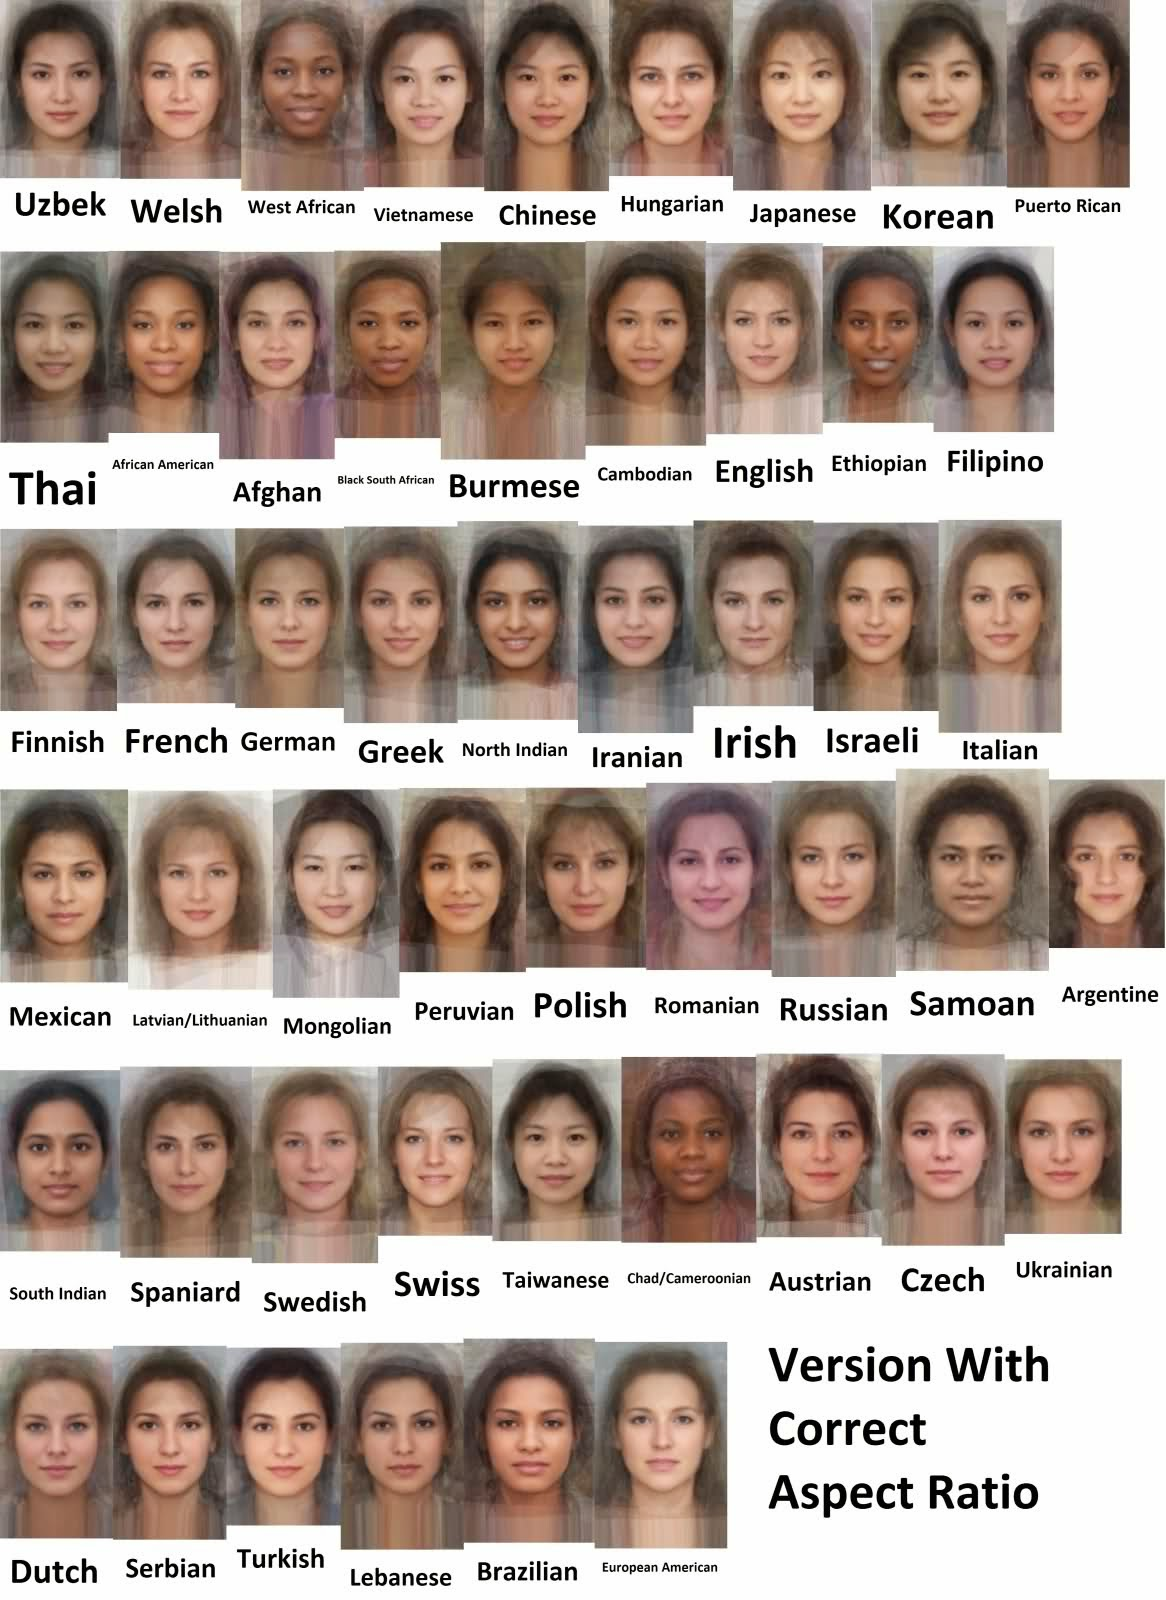 Average Faces of Men and Women